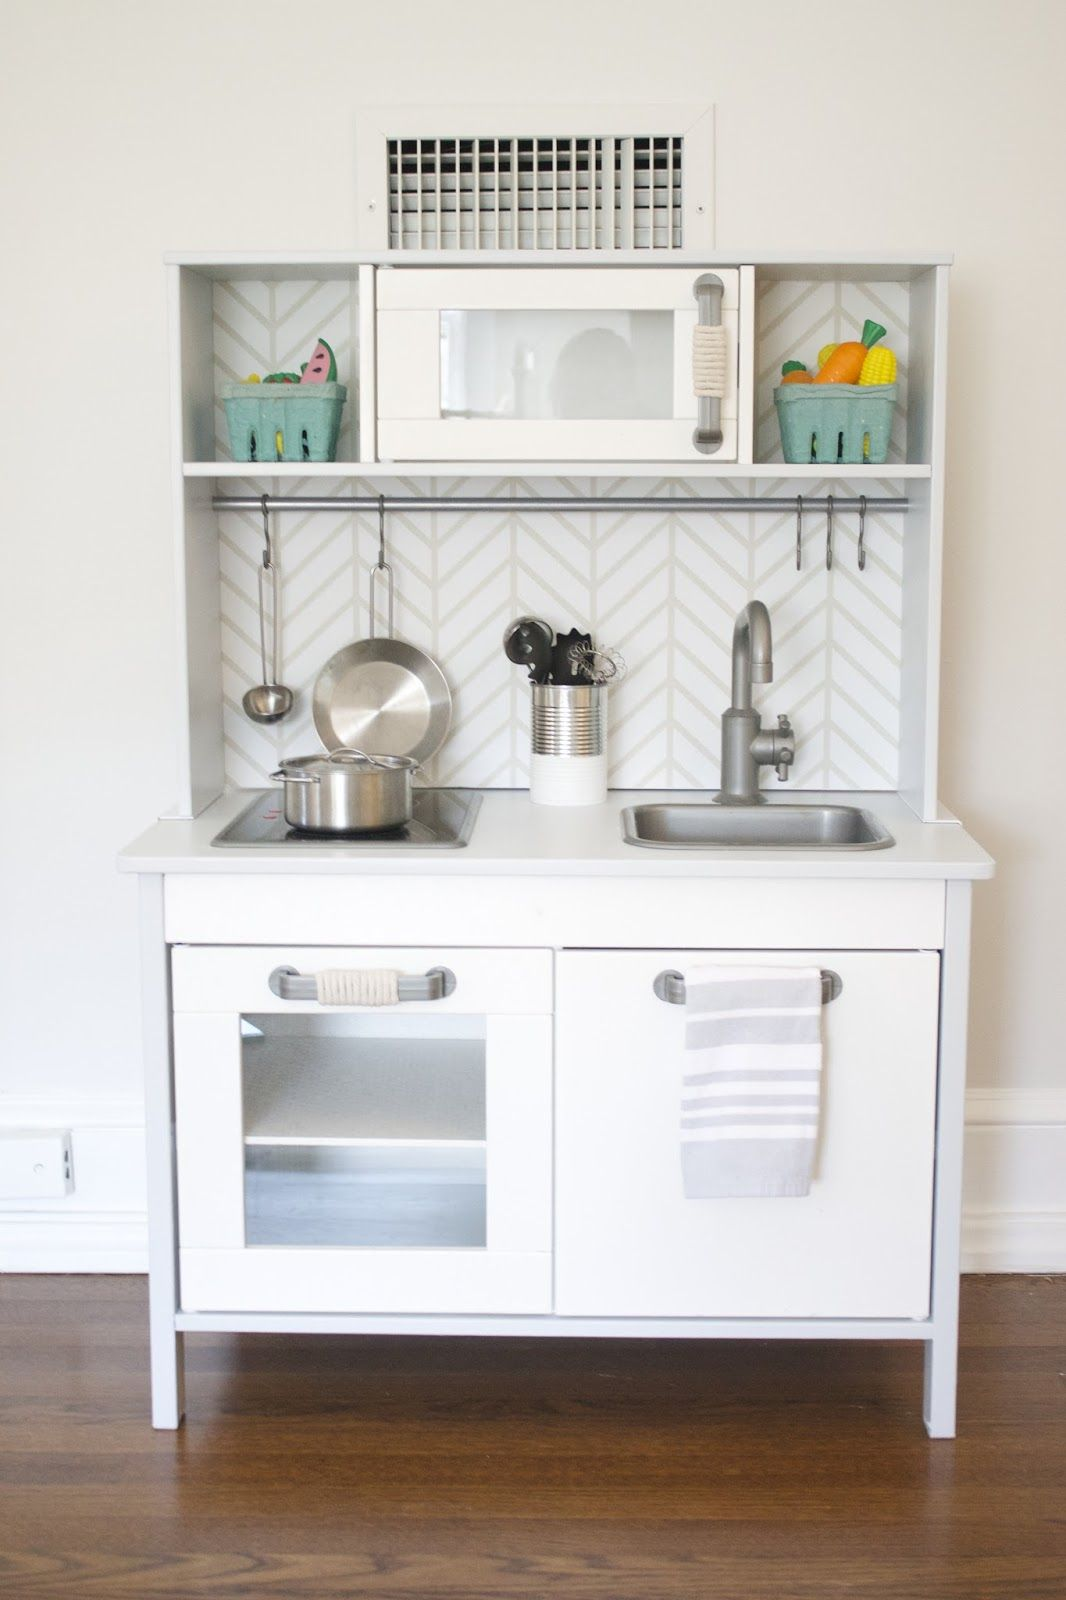 Ikea Küche Organisation The Picket Fence Projects Kiddie Kitchen Renovation